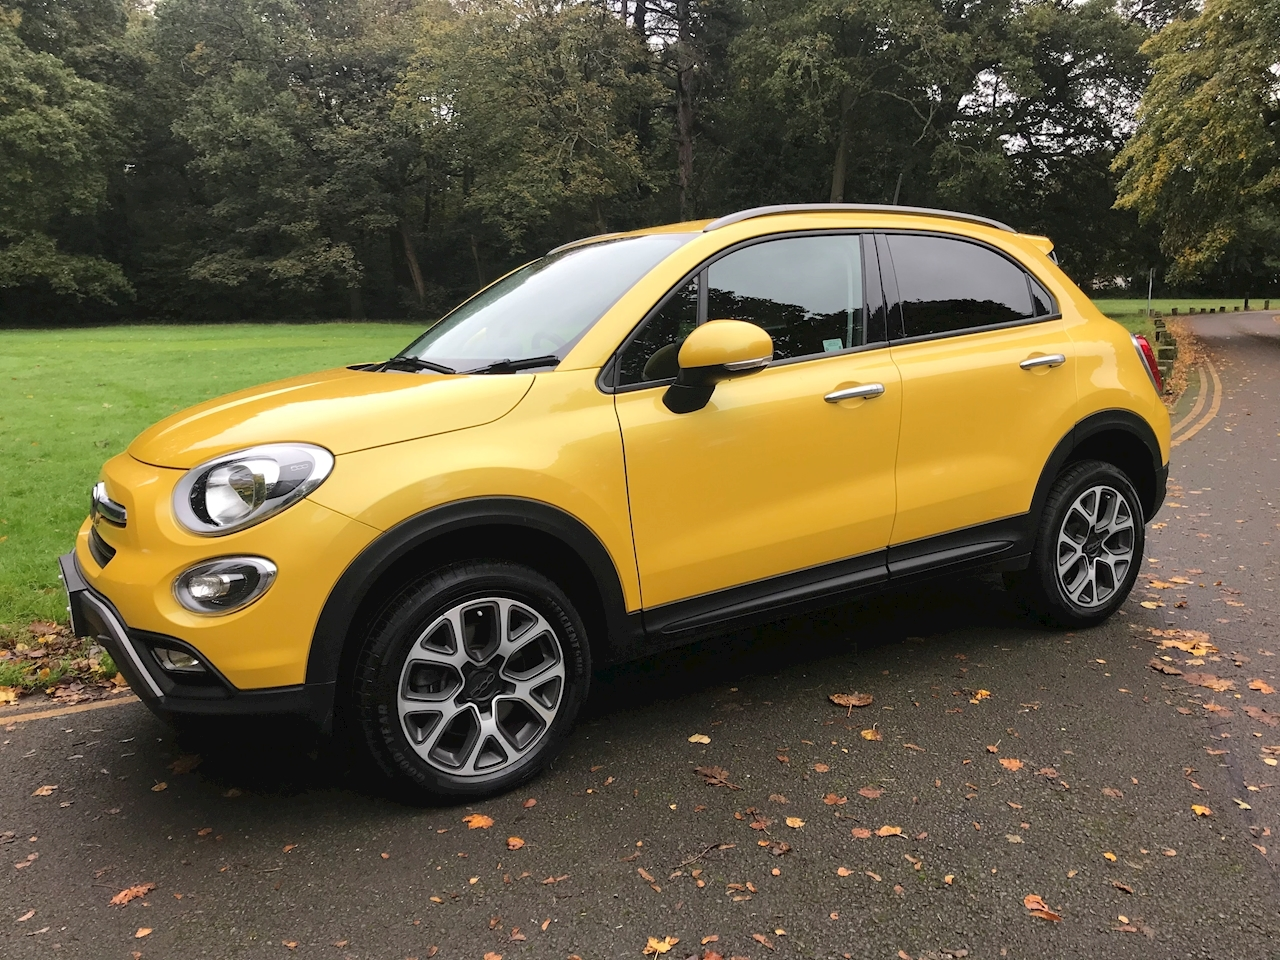 Fiat 500X 1.4 Multiair 170BHP Cross 4x4 2016(16) - Large 0